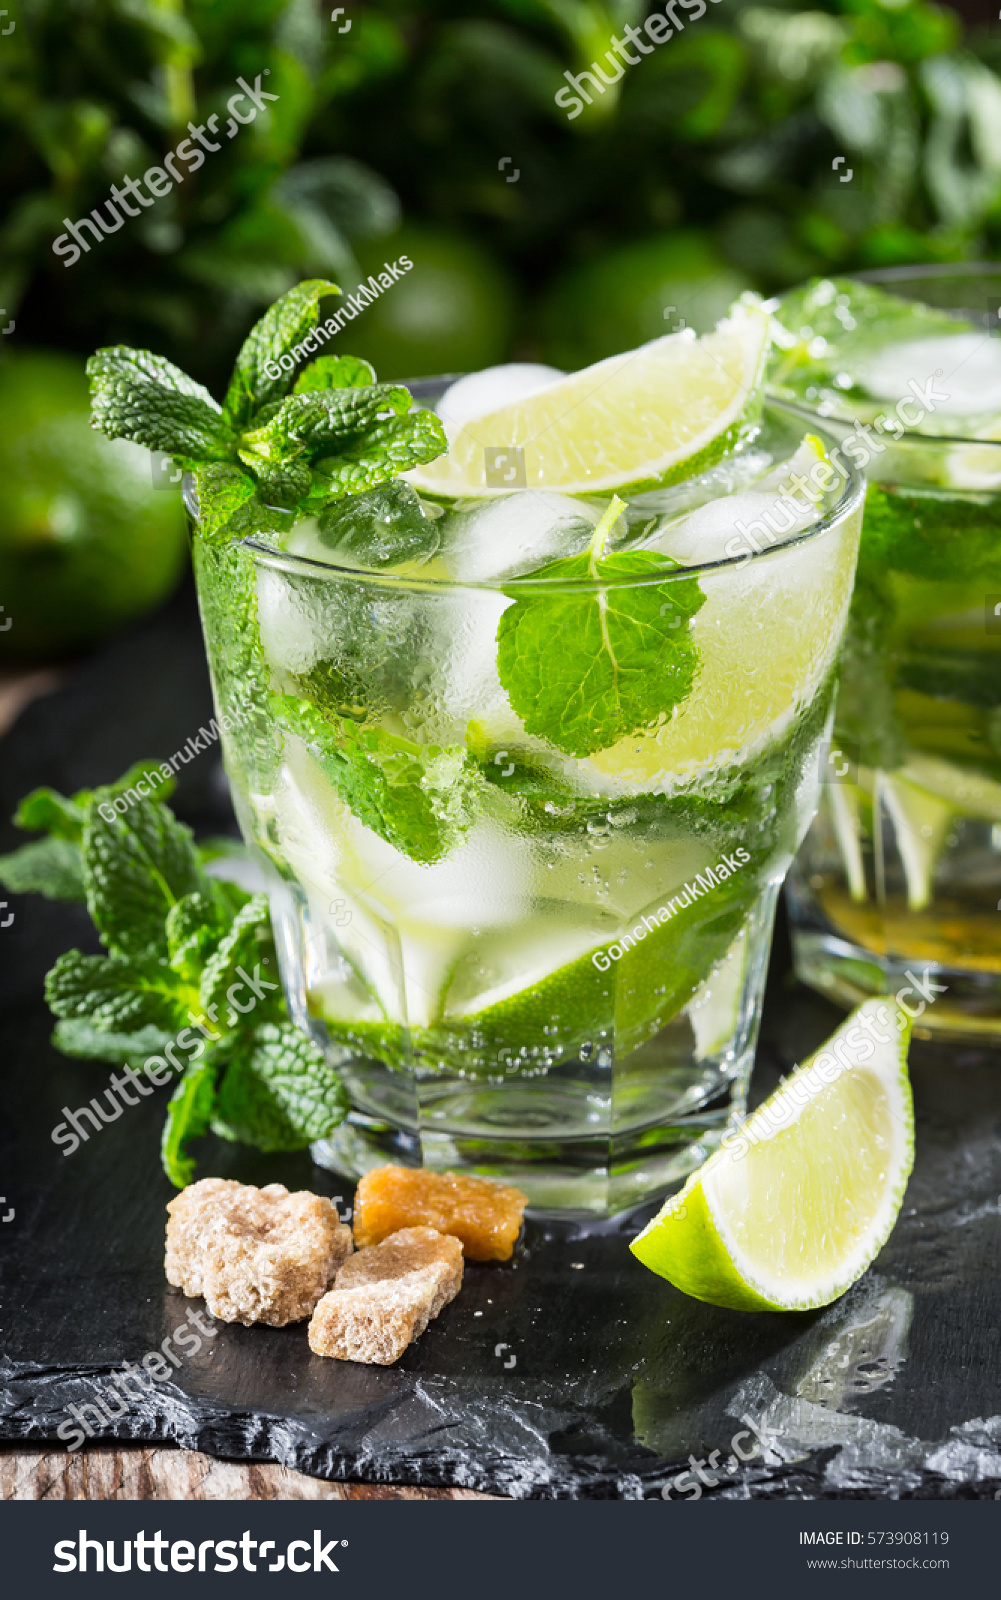 One Glass Mojito Cocktail Fresh Lime Stock Photo 573908119 - Shutterstock